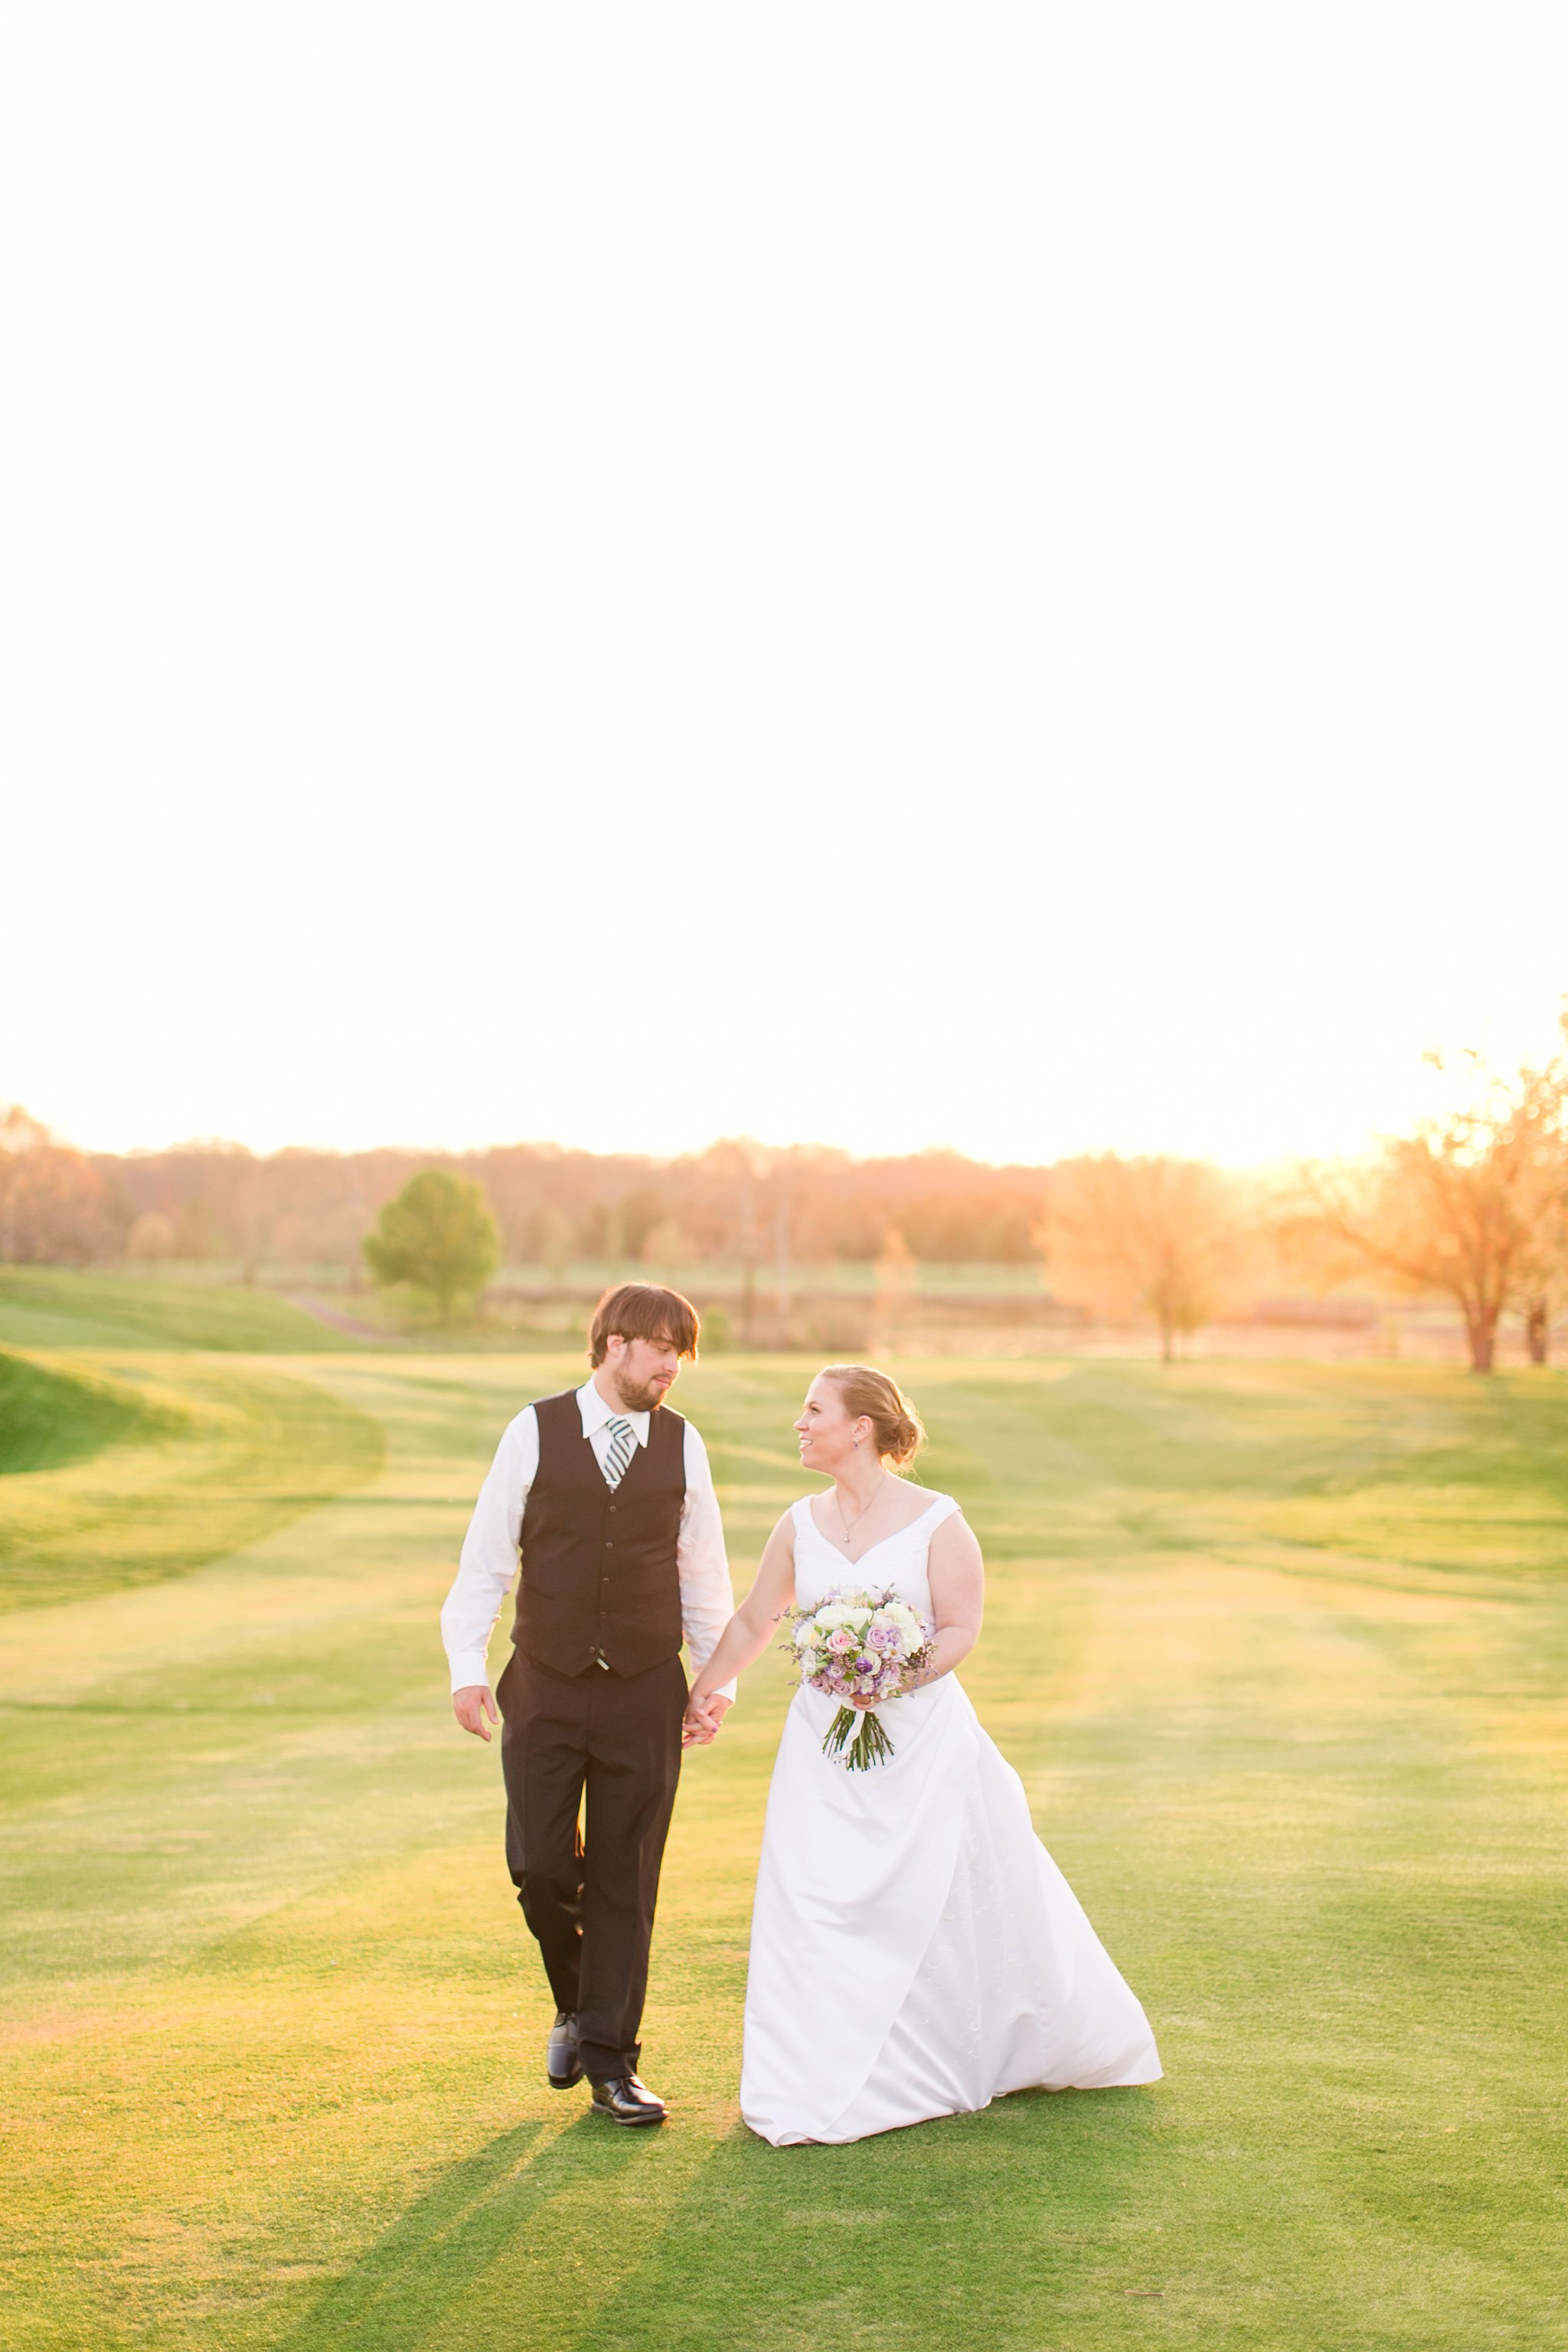 Chantilly National Golf Club Wedding Photos Virginia Wedding Photographer Megan Kelsey Photography Mary Beth and Nathan-119.jpg